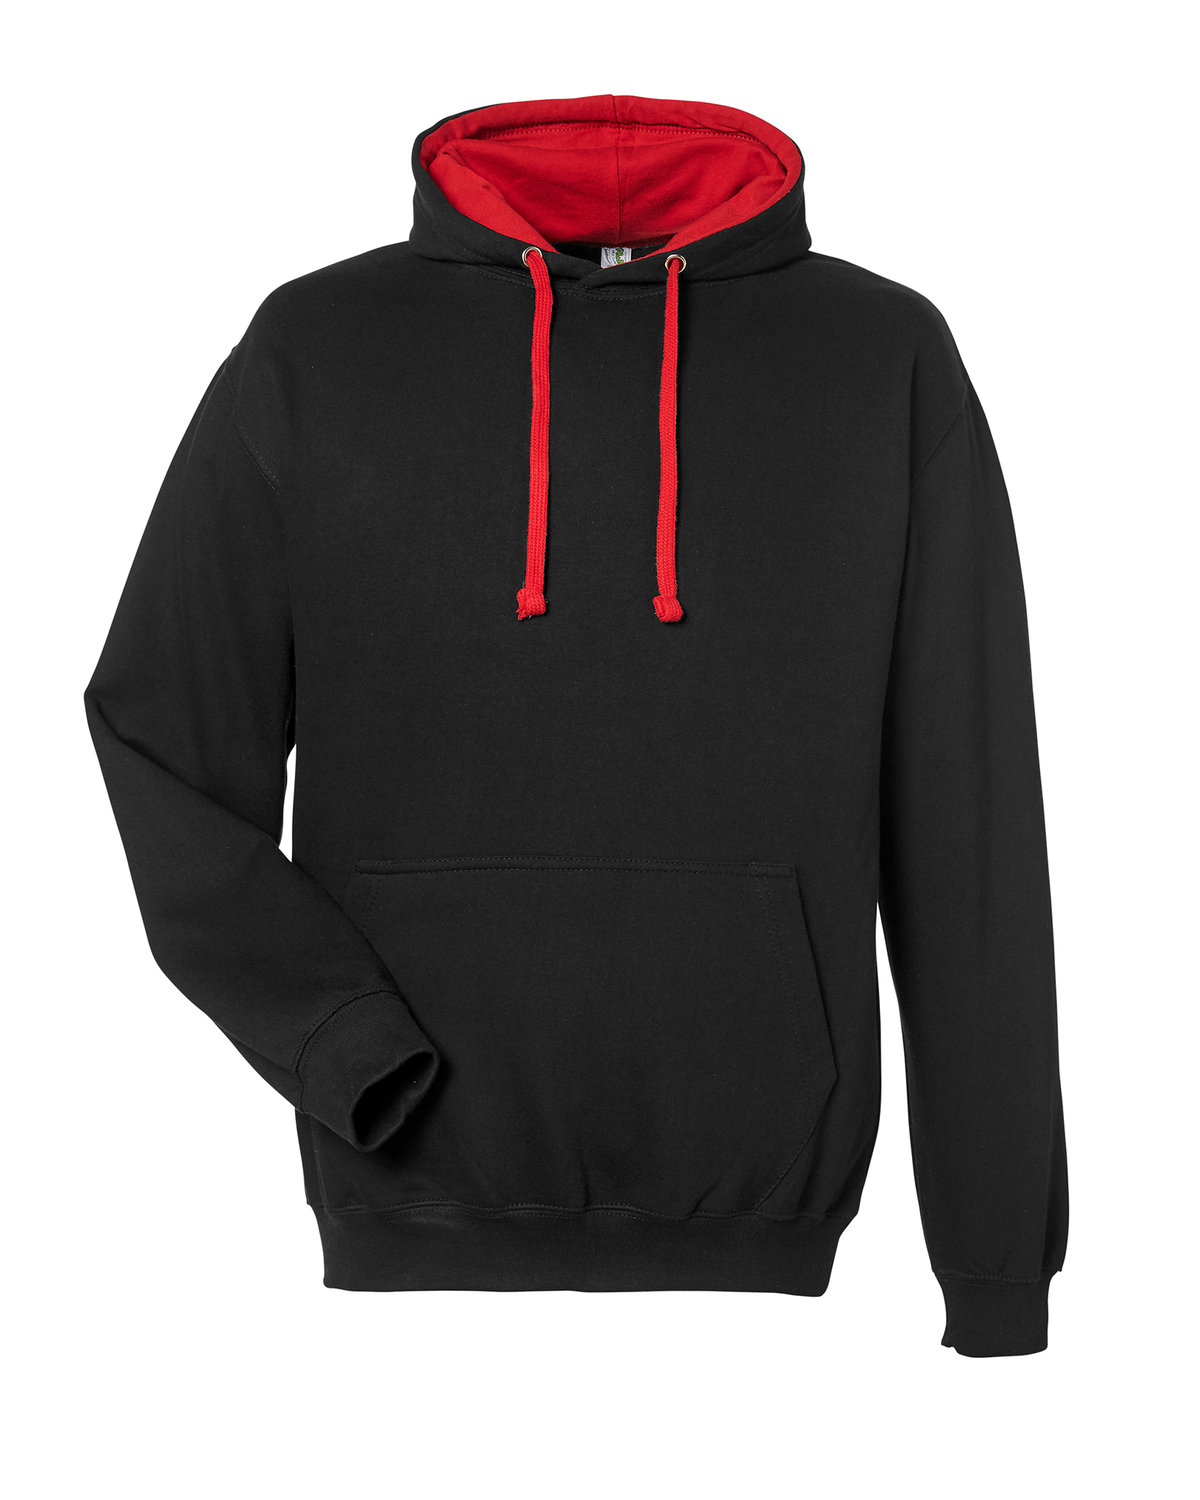 Just Hoods By AWDis Adult 80/20 Midweight Varsity Contrast Hooded Sweatshirt JET BLK/ FIRE RD